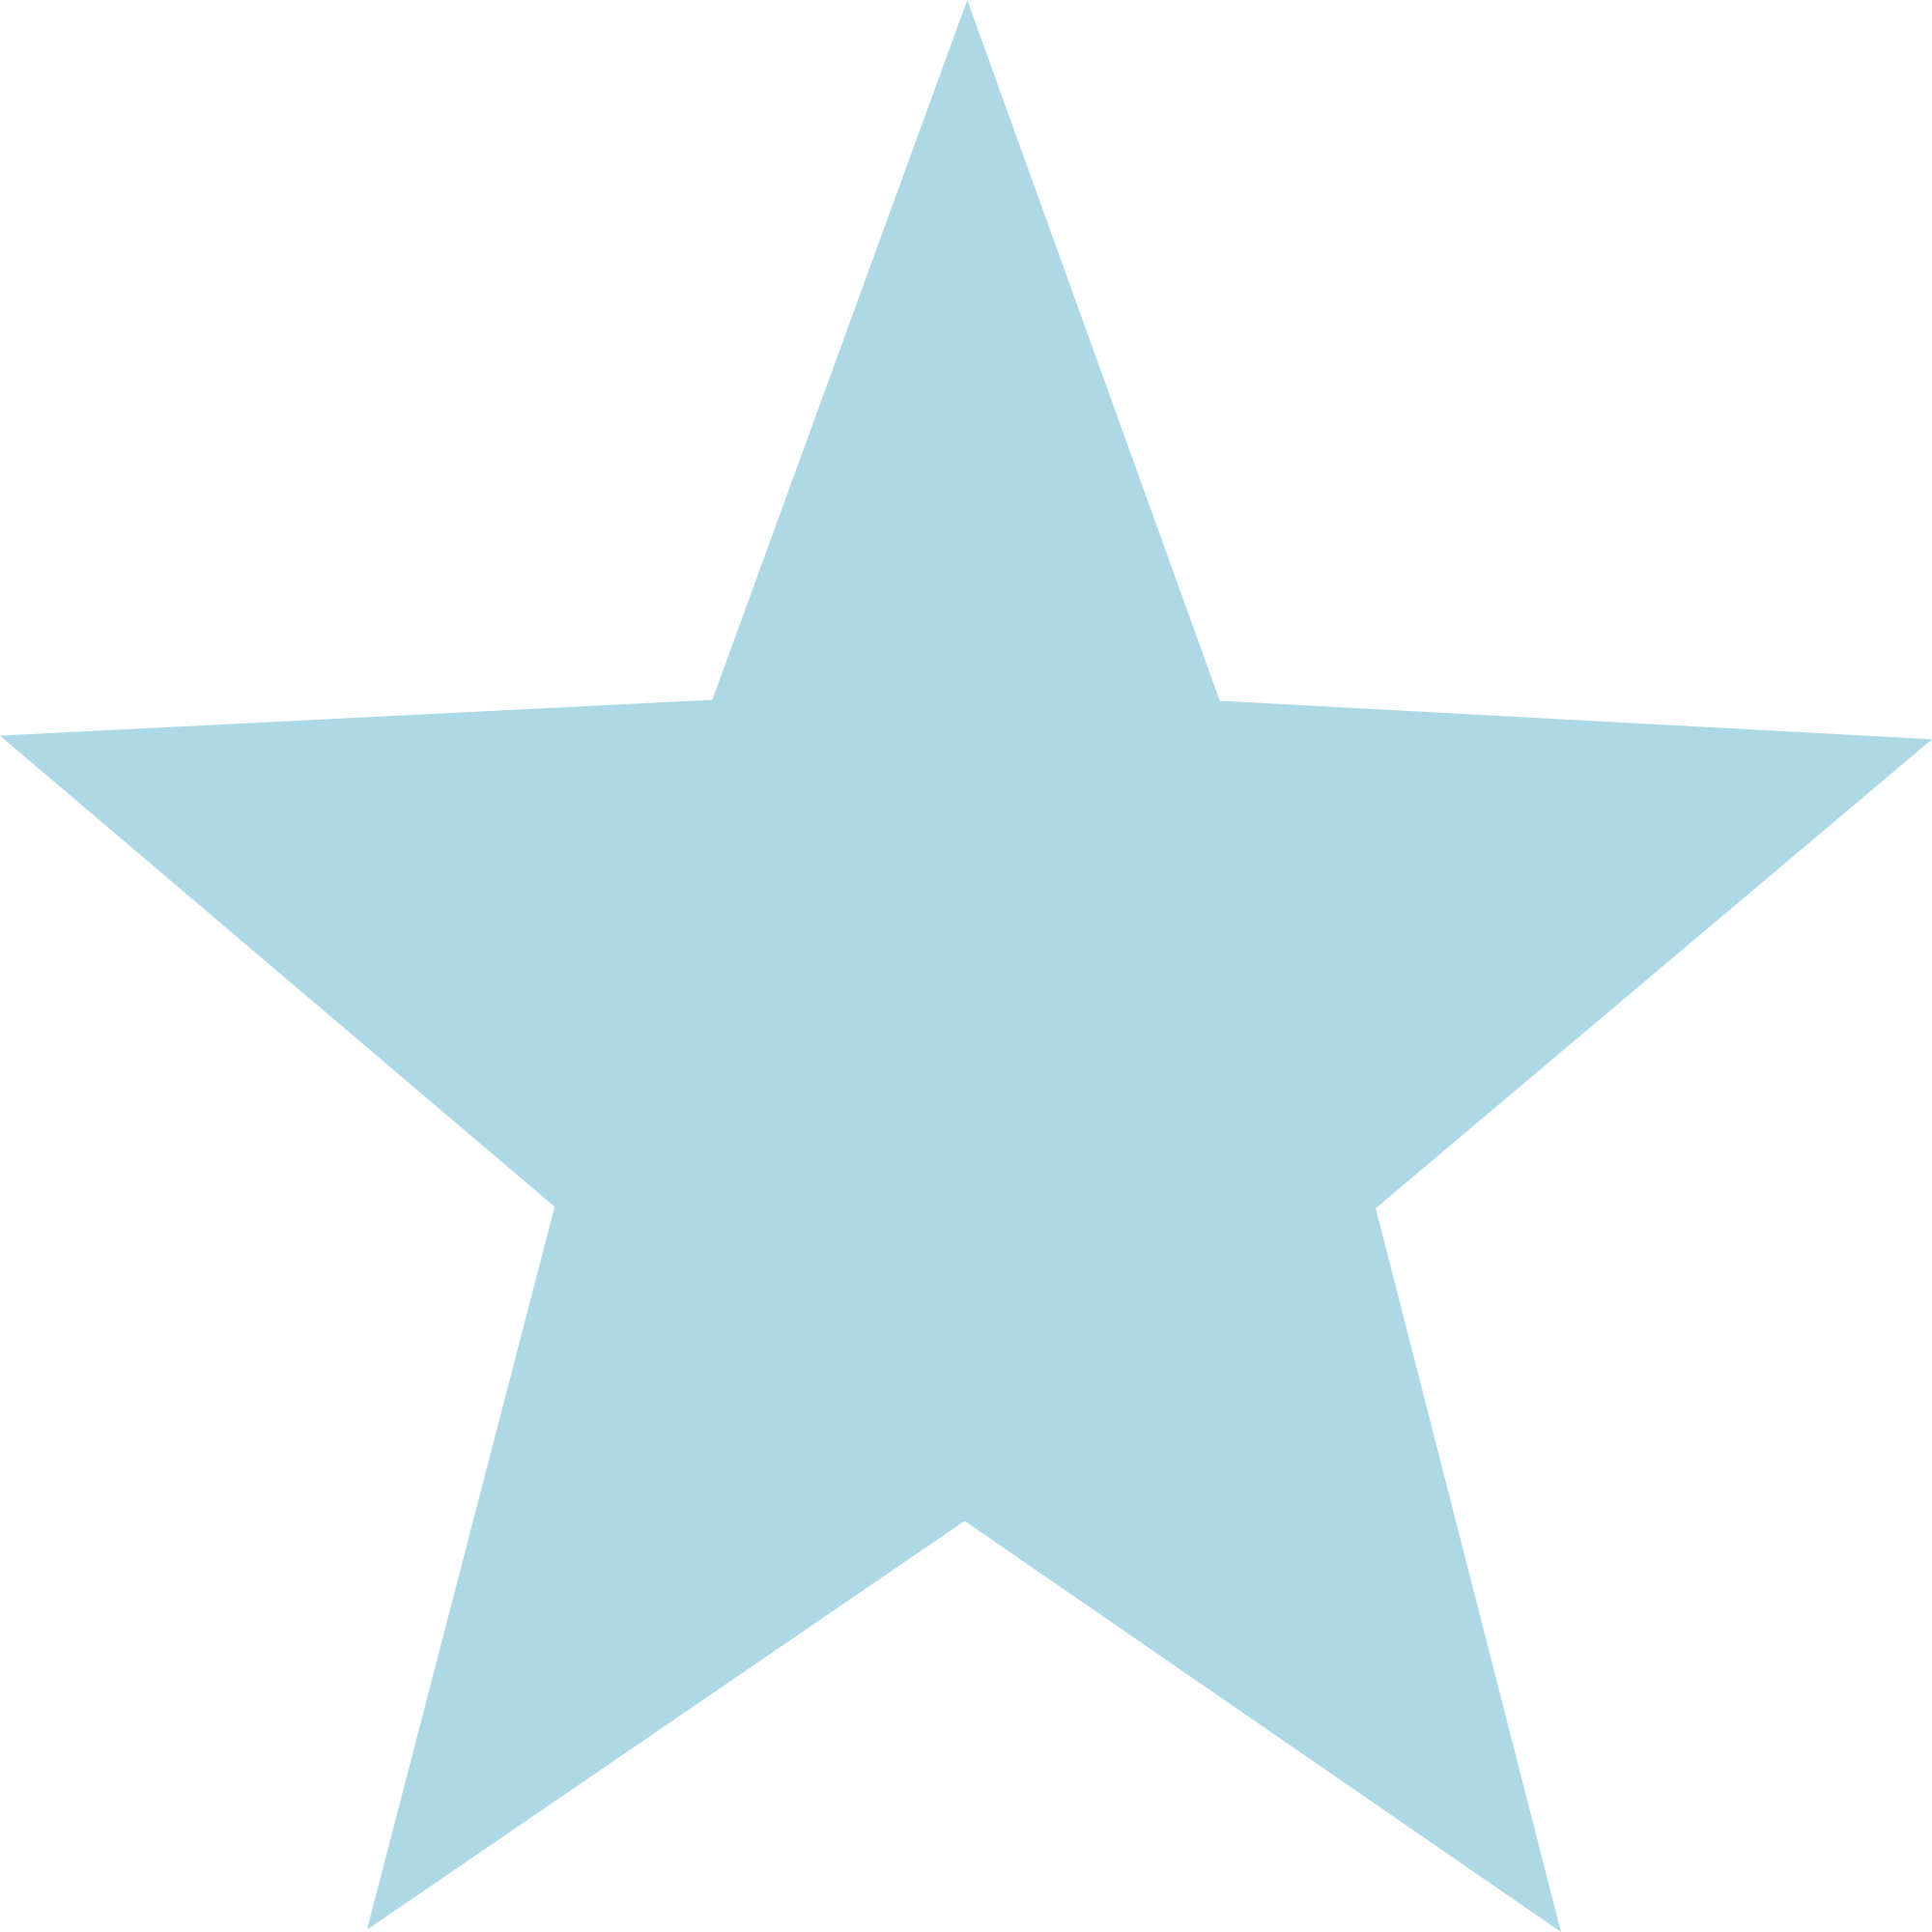 Star light clipart clipart royalty free stock 28+ Collection of Light Blue Star Clipart | High quality, free ... clipart royalty free stock